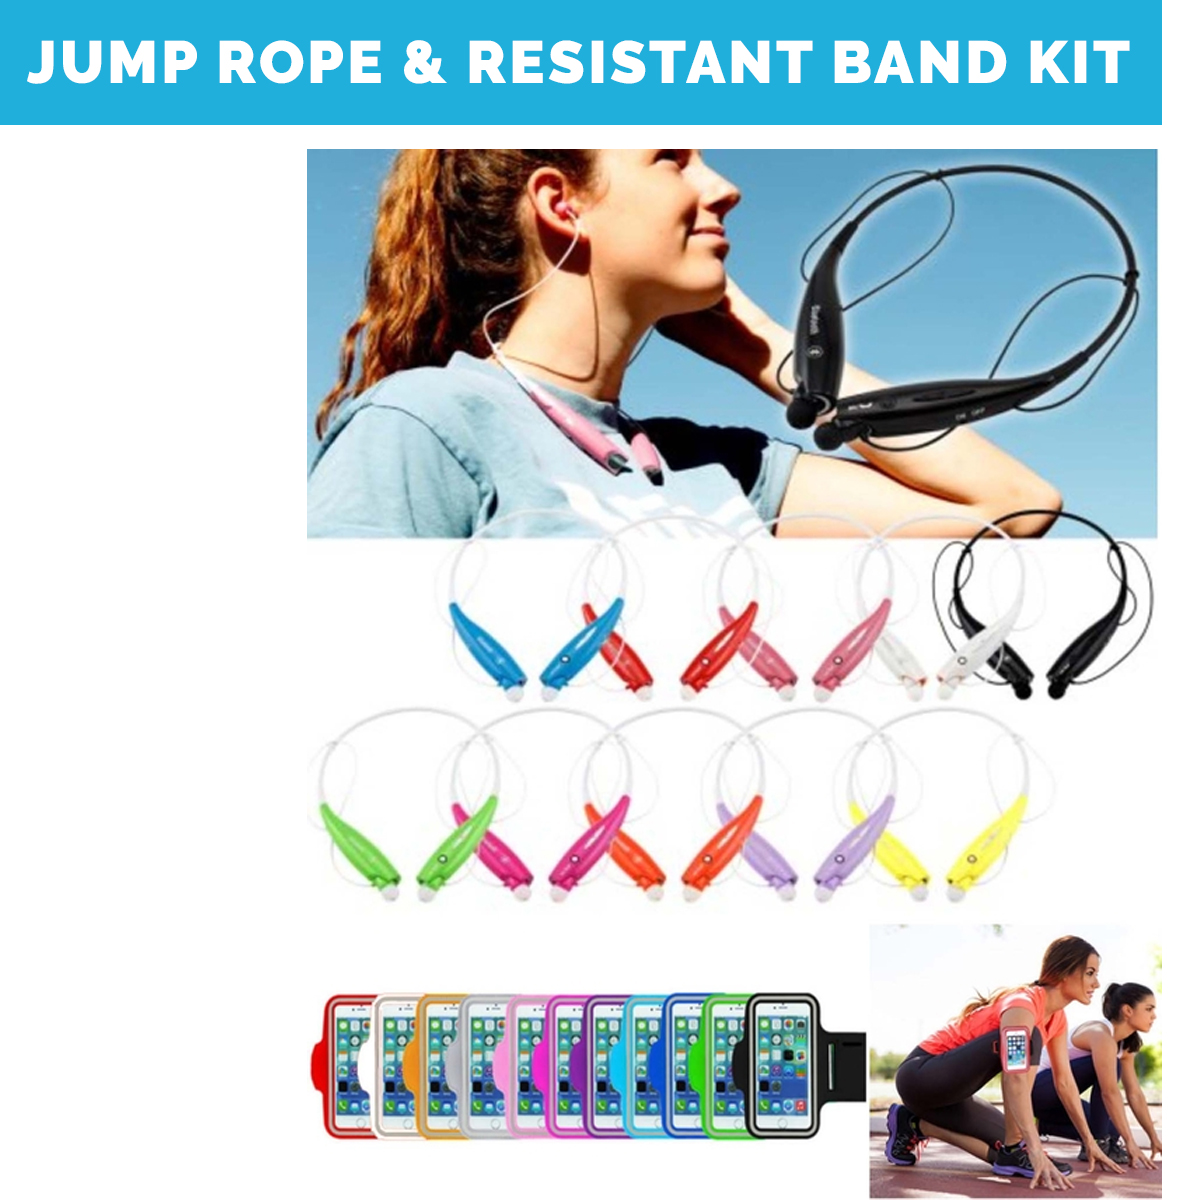 Work From Home Kits- employee fitness kits